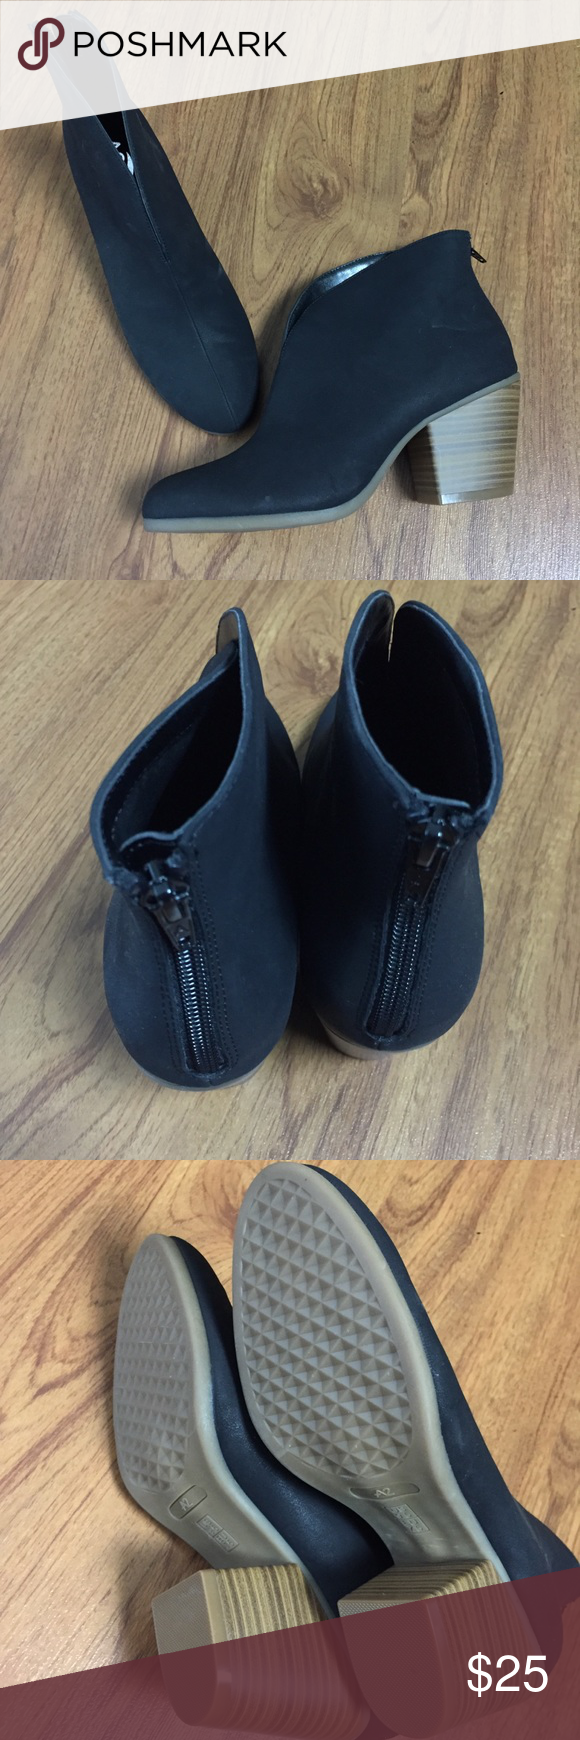 81cfc30687a NIB Black Aerosoles Booties A2 brand new in box as pictured size 9.5 M pls  refer to website for fit A2 By Aerosoles Shoes Ankle Boots   Booties